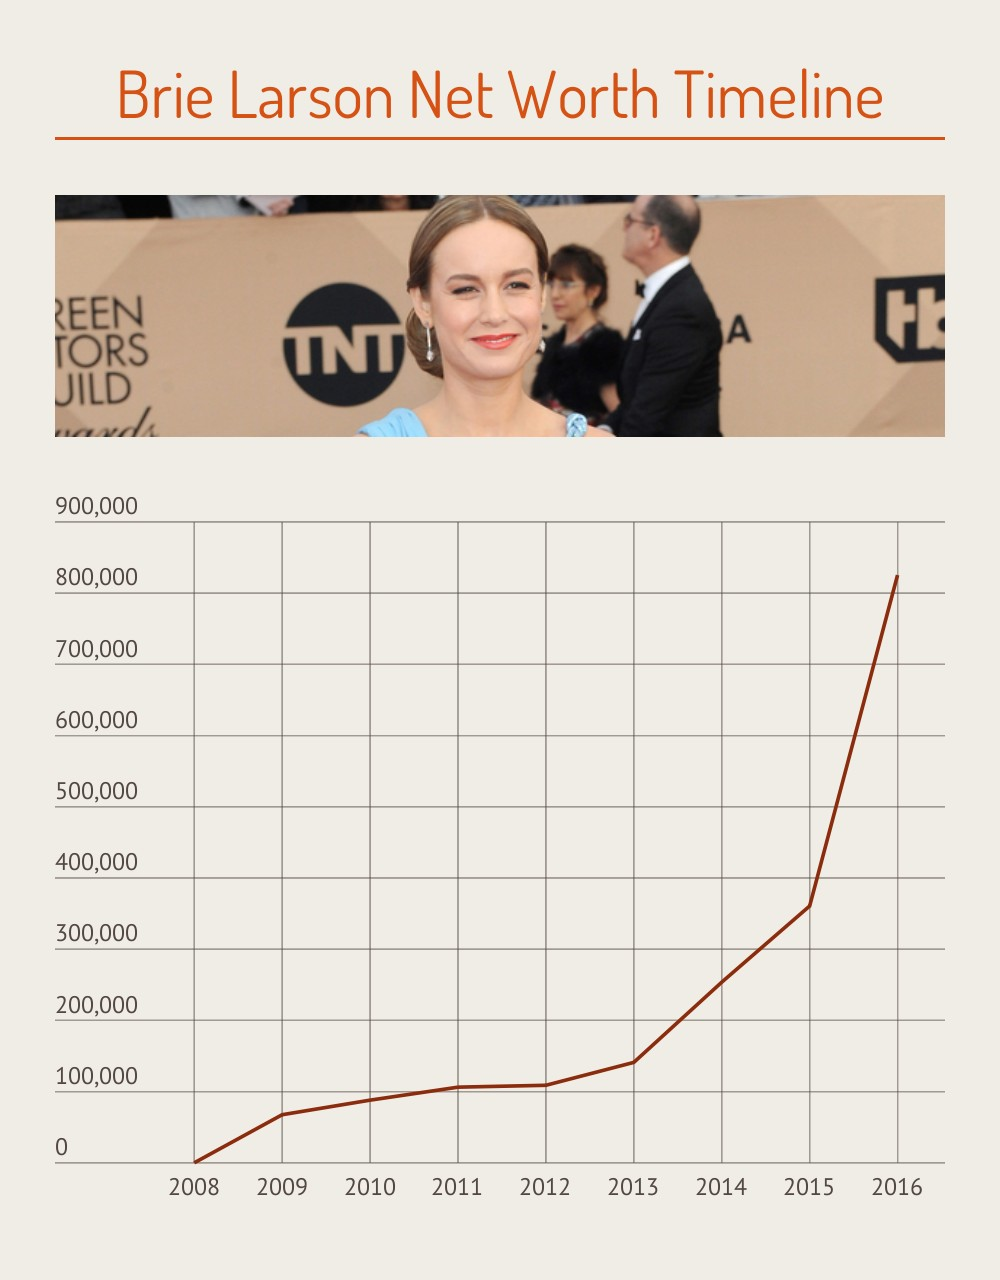 Brie Larson Net Worth Time